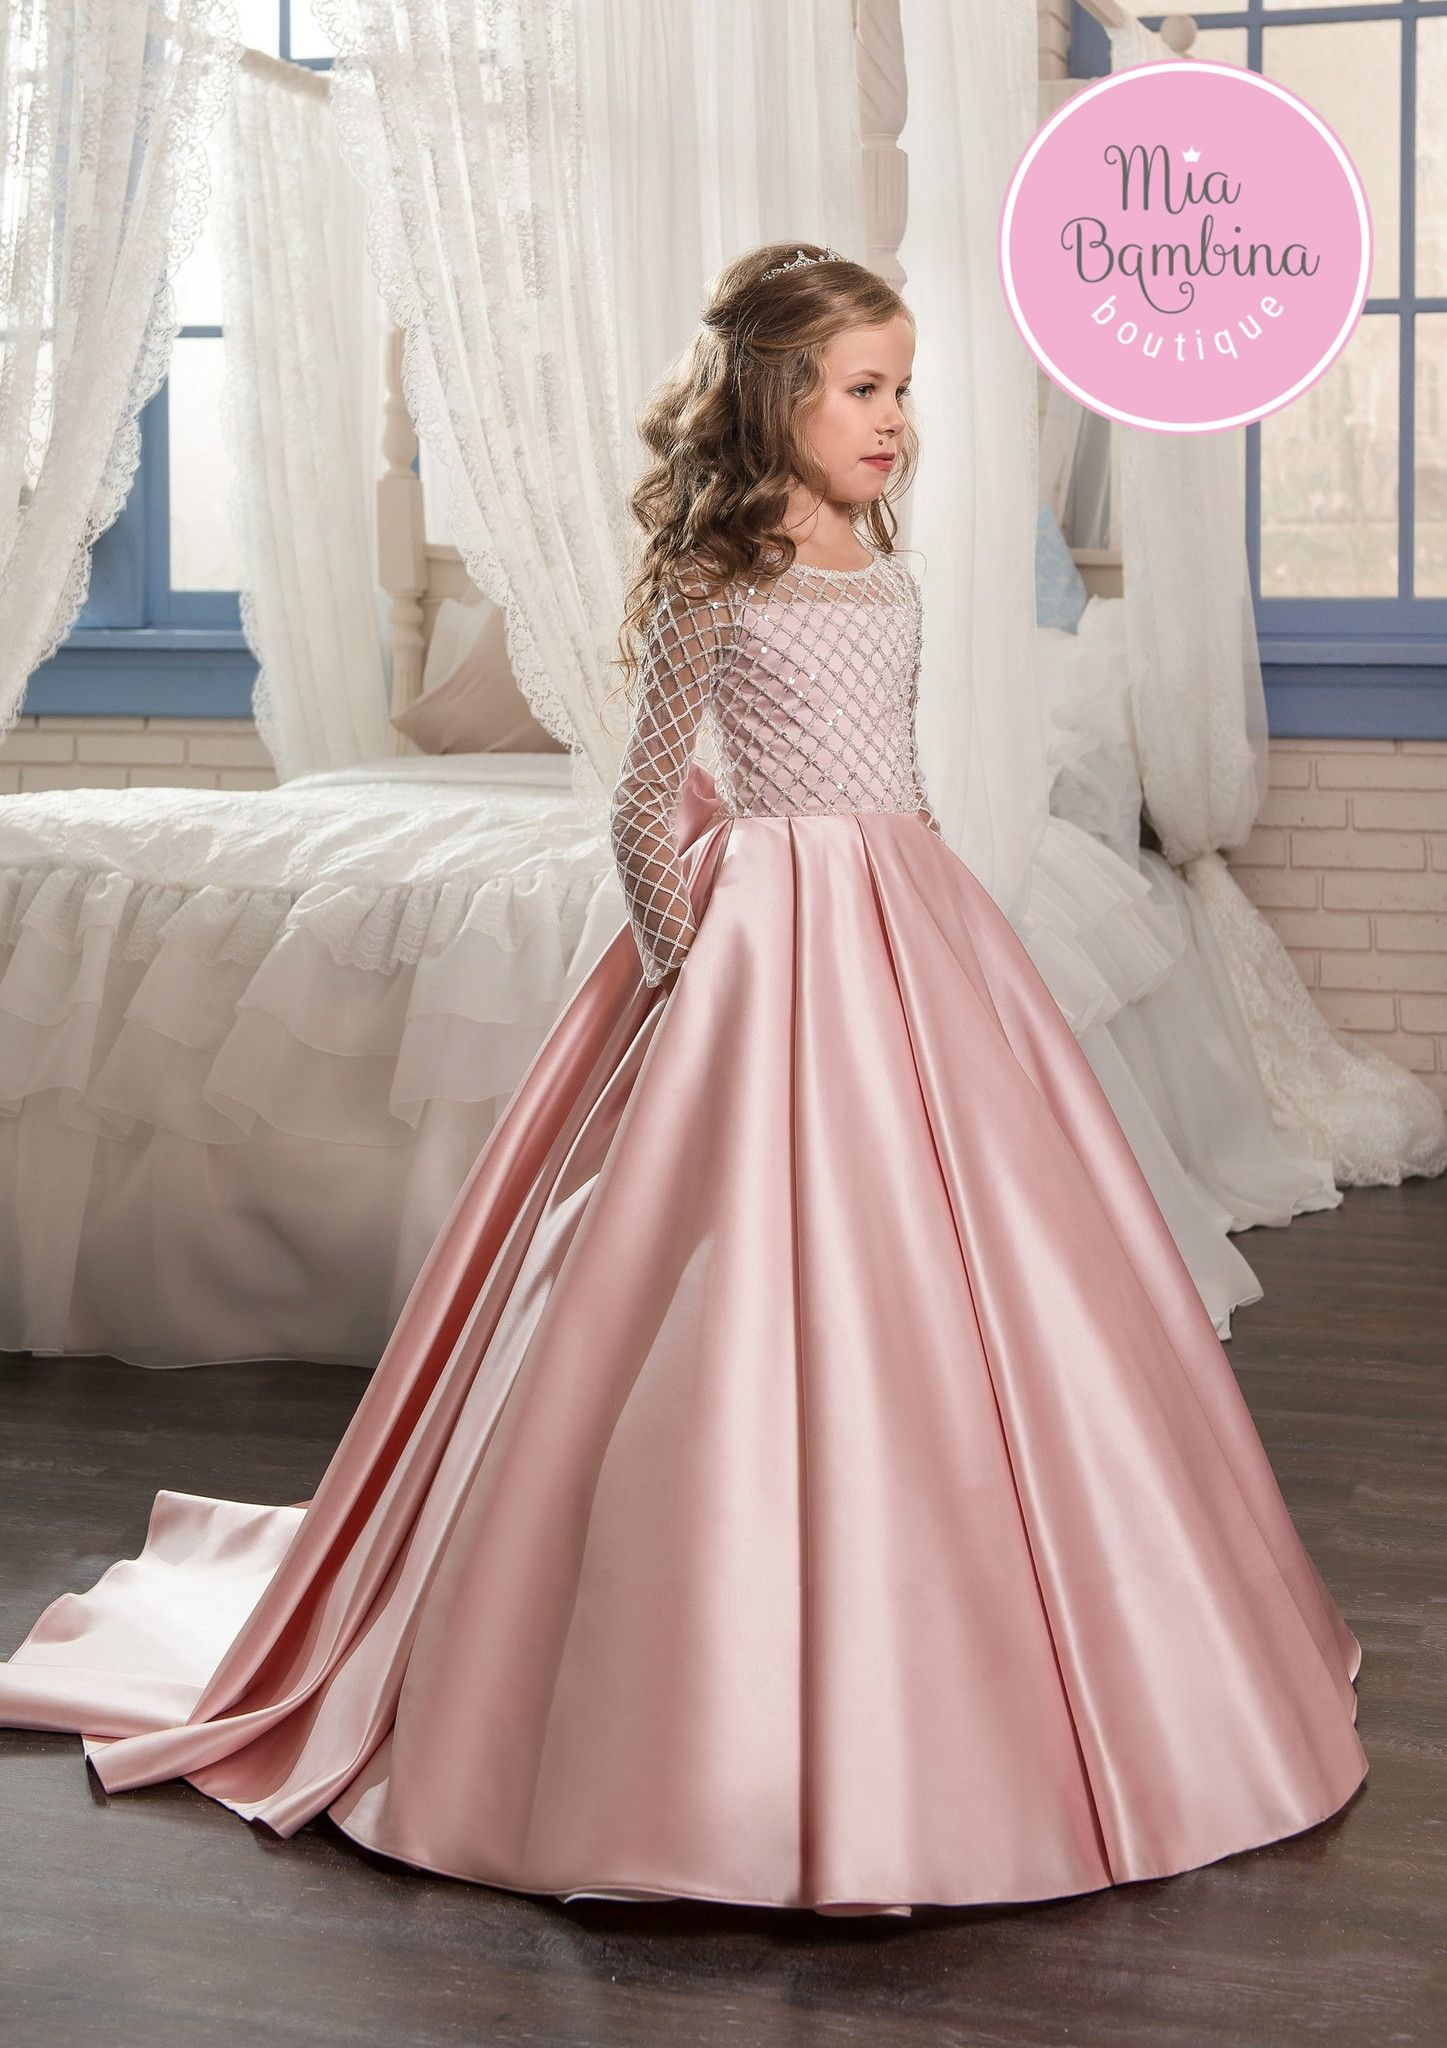 6080dd8a1b This chic Toronto flower girl dress is a long satin ball gown for  vintage-inspired weddings. It features a long-sleeved top embroidered with  textured ...